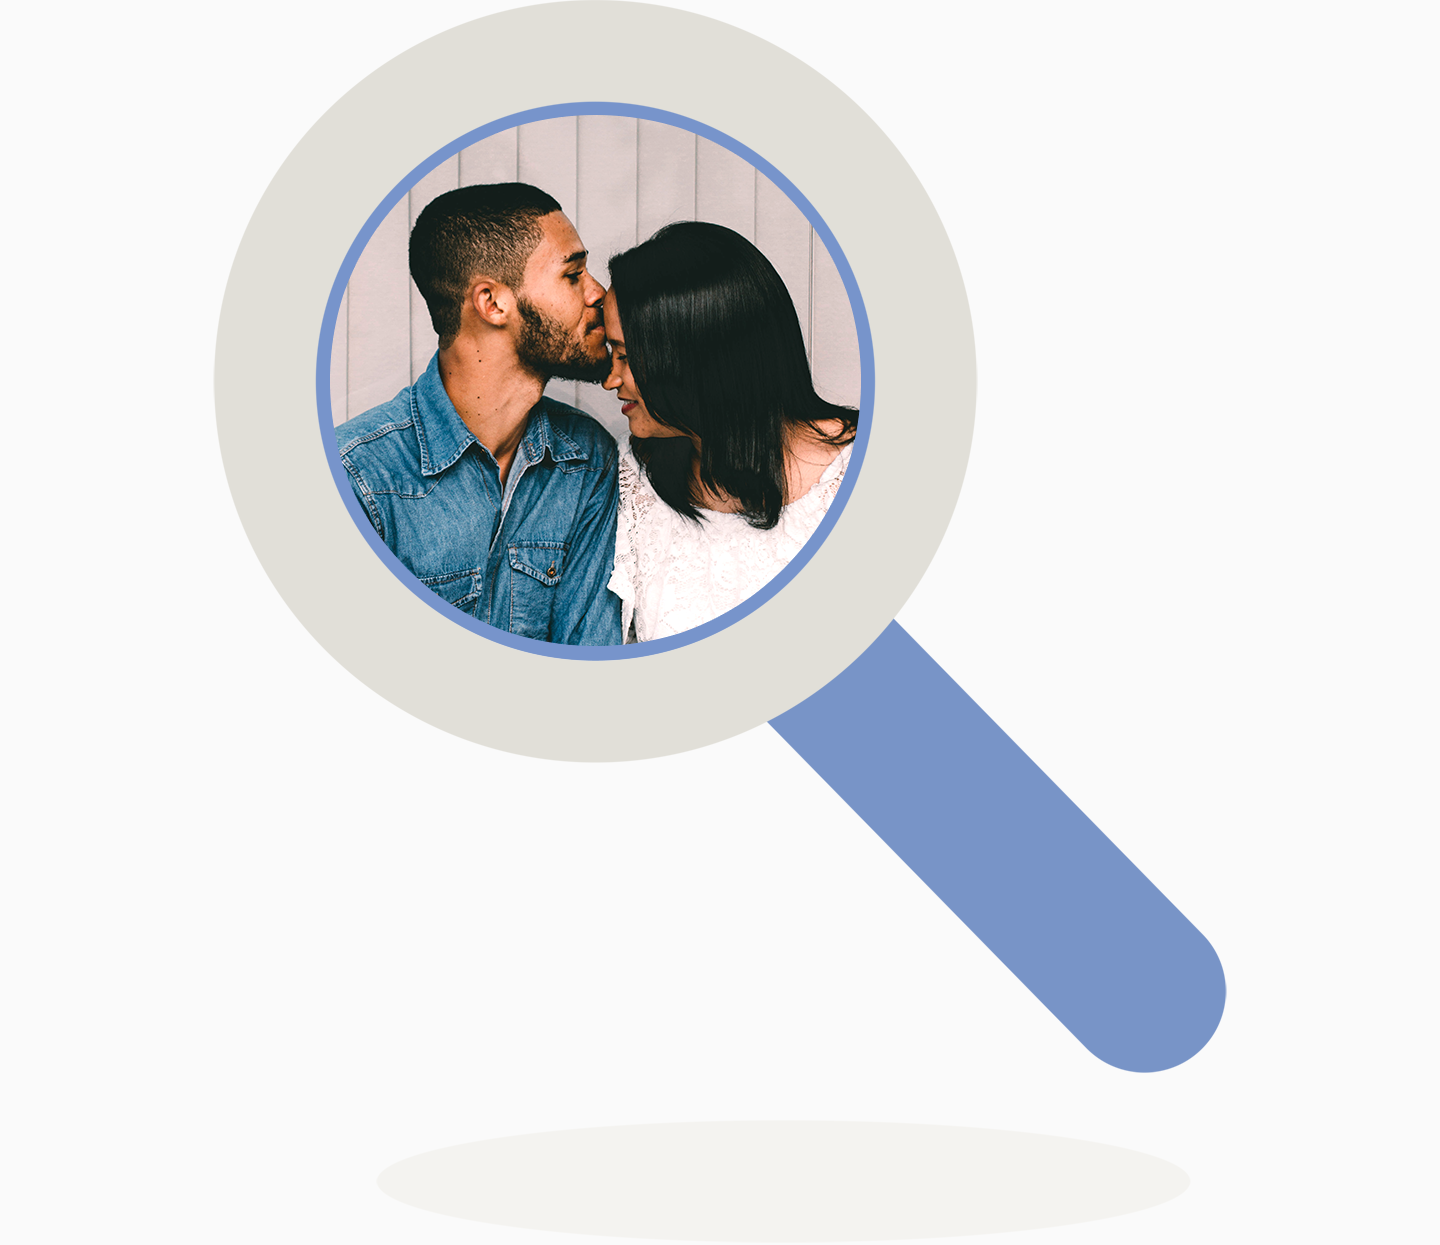 Magnifying glass reveals a man kissing a woman on the forehead.